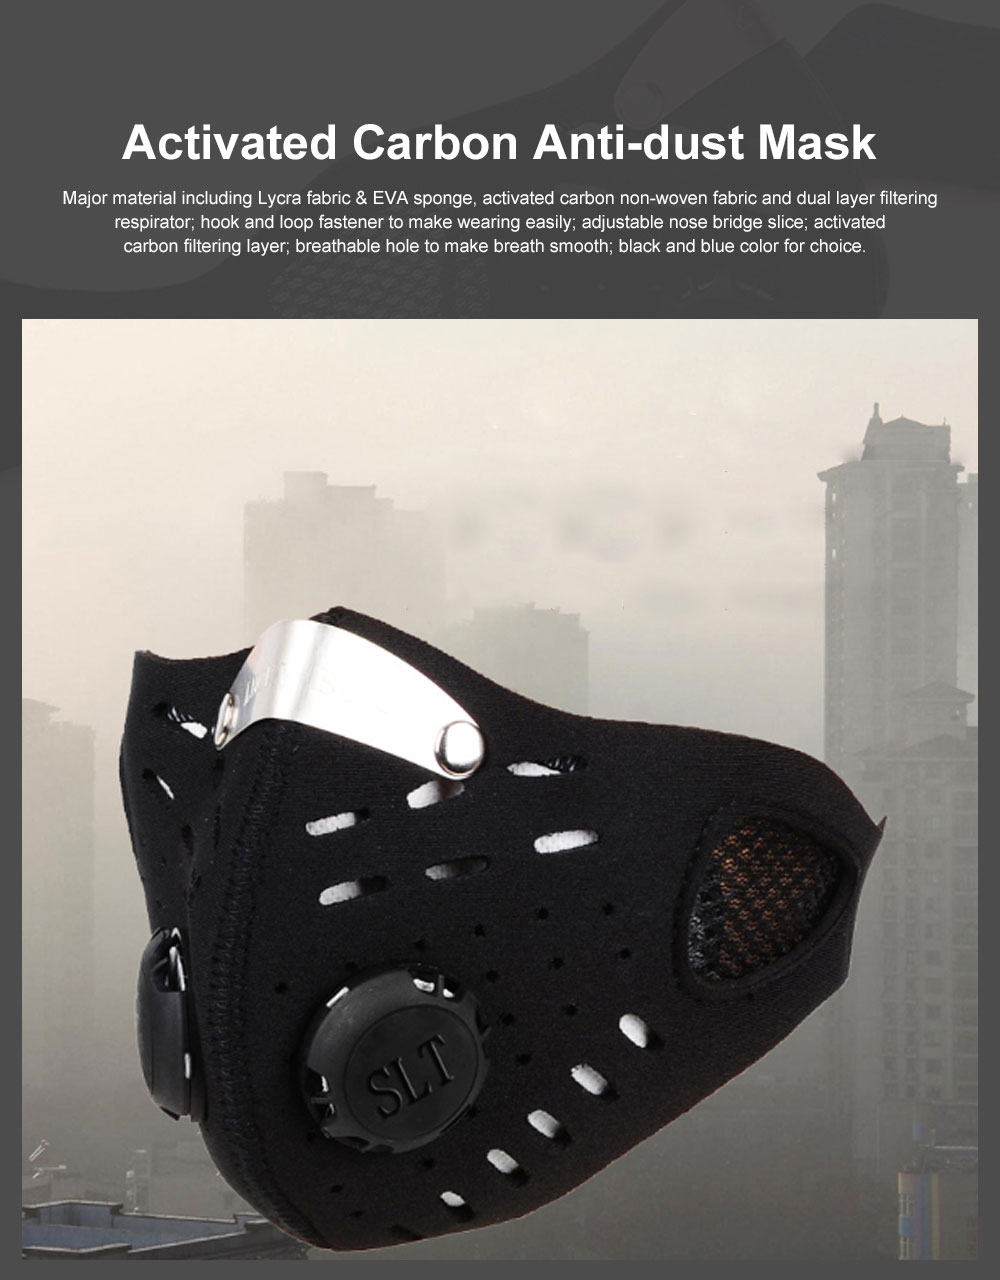 Activated Carbon Facial Mask for Outdoor Bicycle Riding Filter Element Replaceable Mouth-muffle Nose Clamp Design Anti-dust & Anti-smog Respirator 0